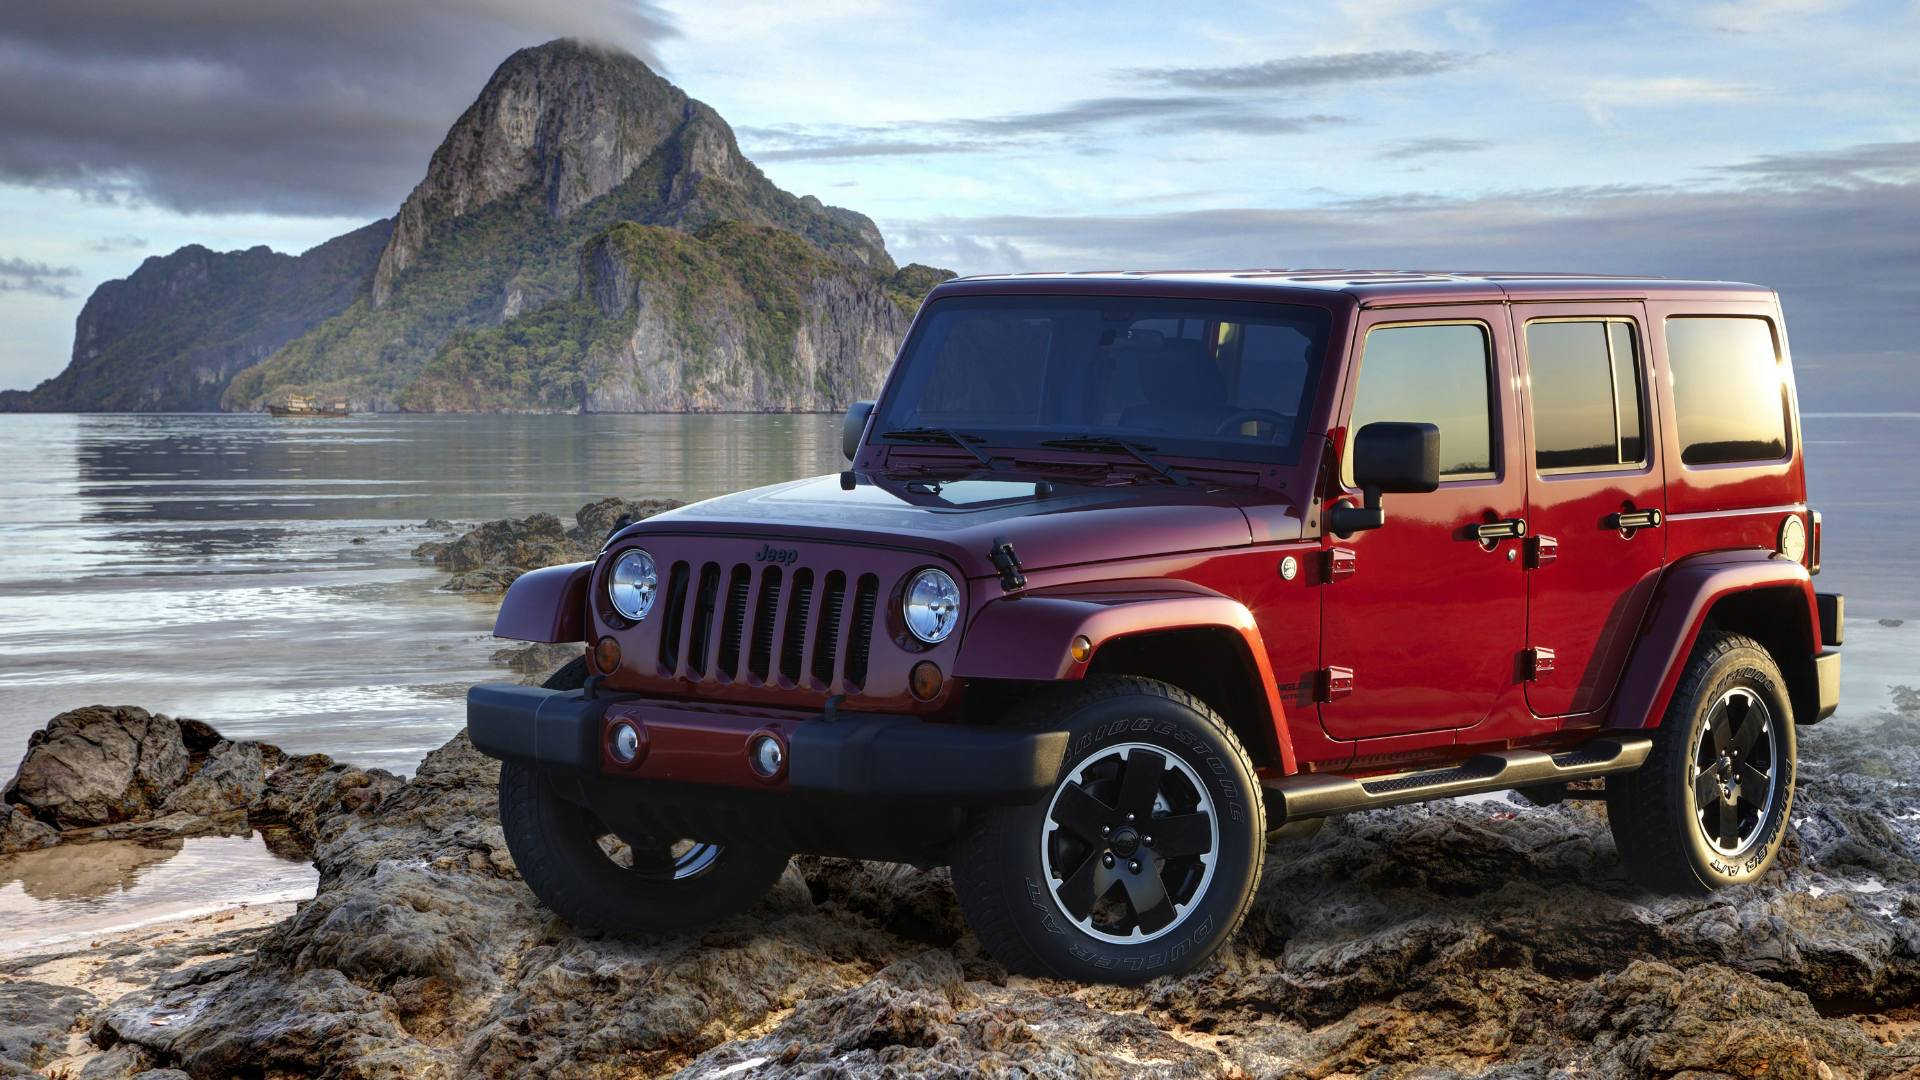 2012 Red Jeep Wrangler HD Wallpapers 1920x1080